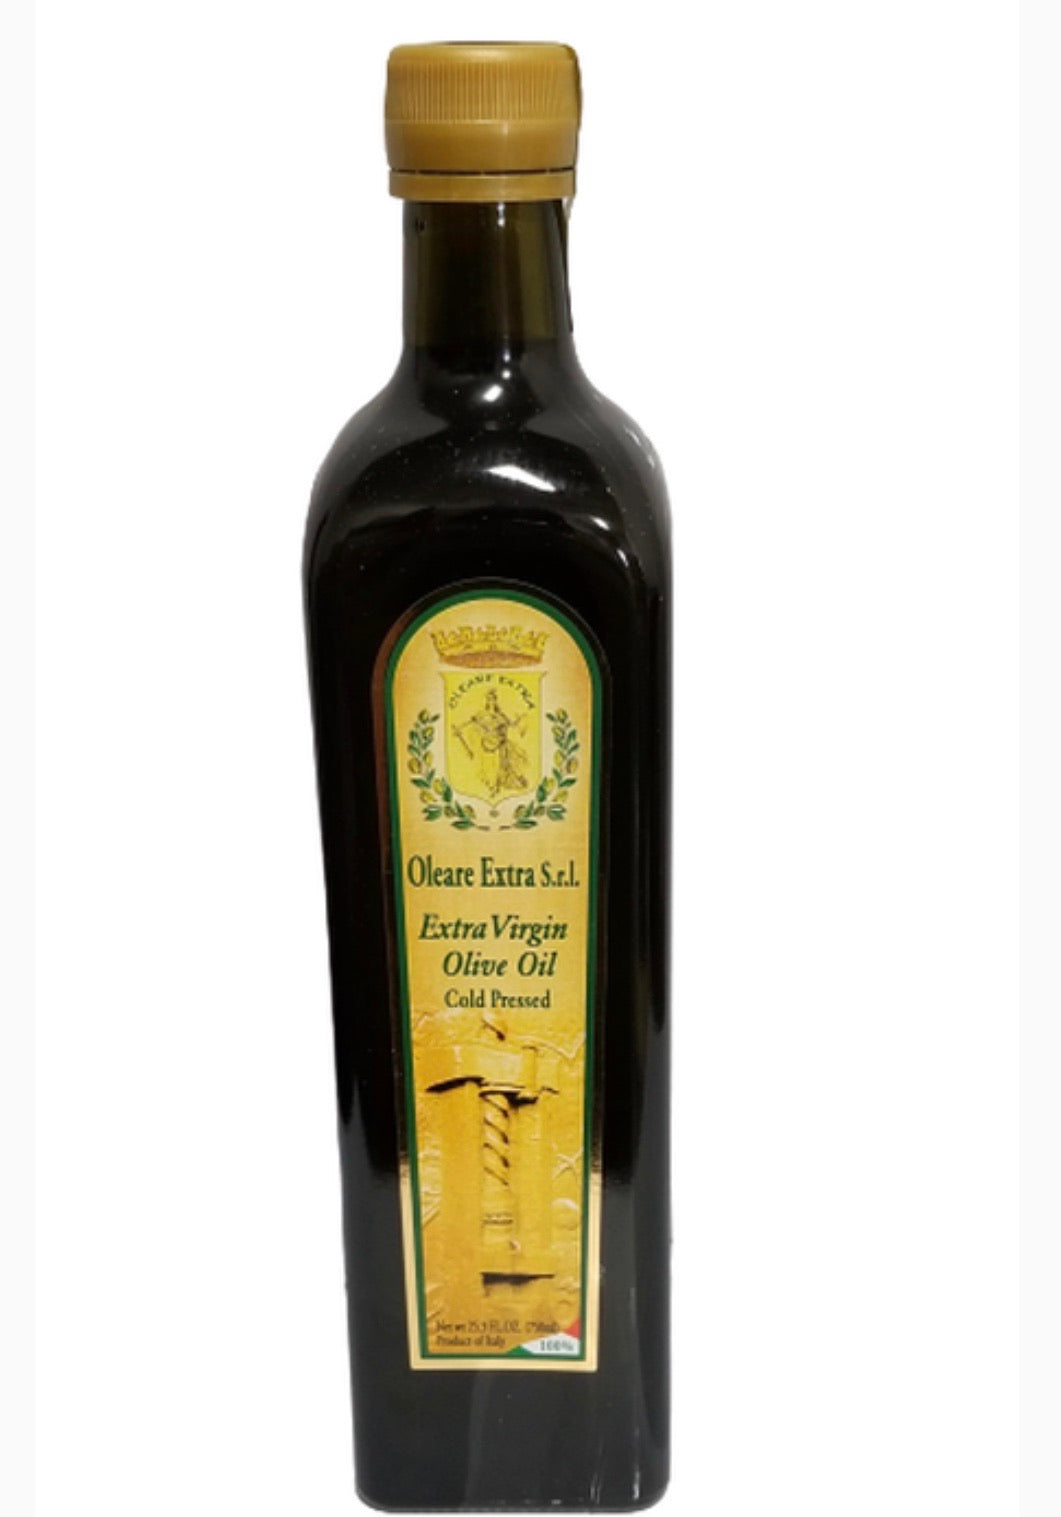 Extra Virgin olive oil, Oleara Extra 750ml